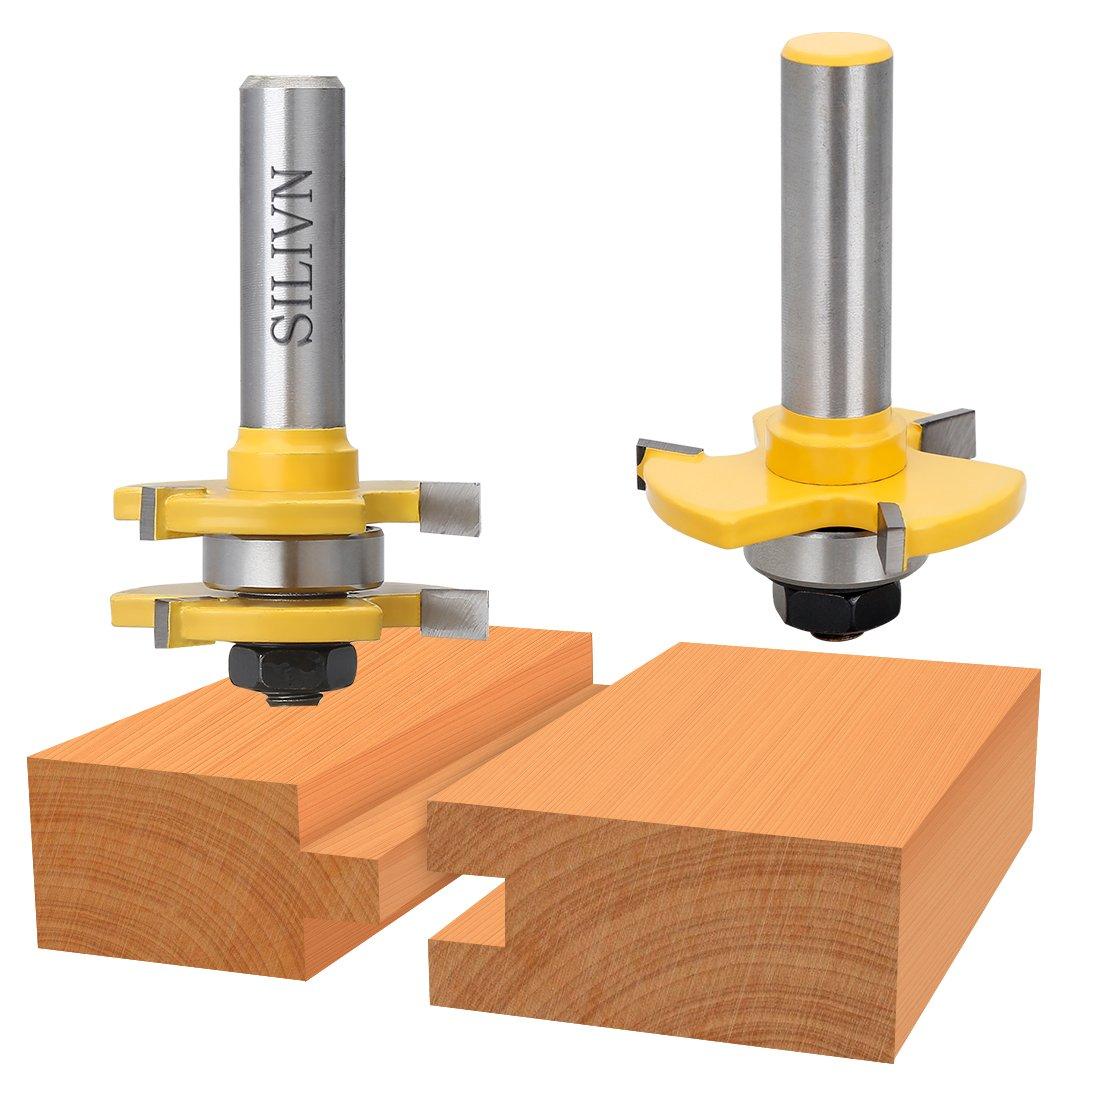 SILIVN Tongue and Groove Set, Router Bit Set, Wood Door Flooring 3 Teeth Adjustable, 1/2 Inch Shank T Shape Wood Milling Cutter Woodworking Tool, 2 Piece by SILIVN (Image #4)